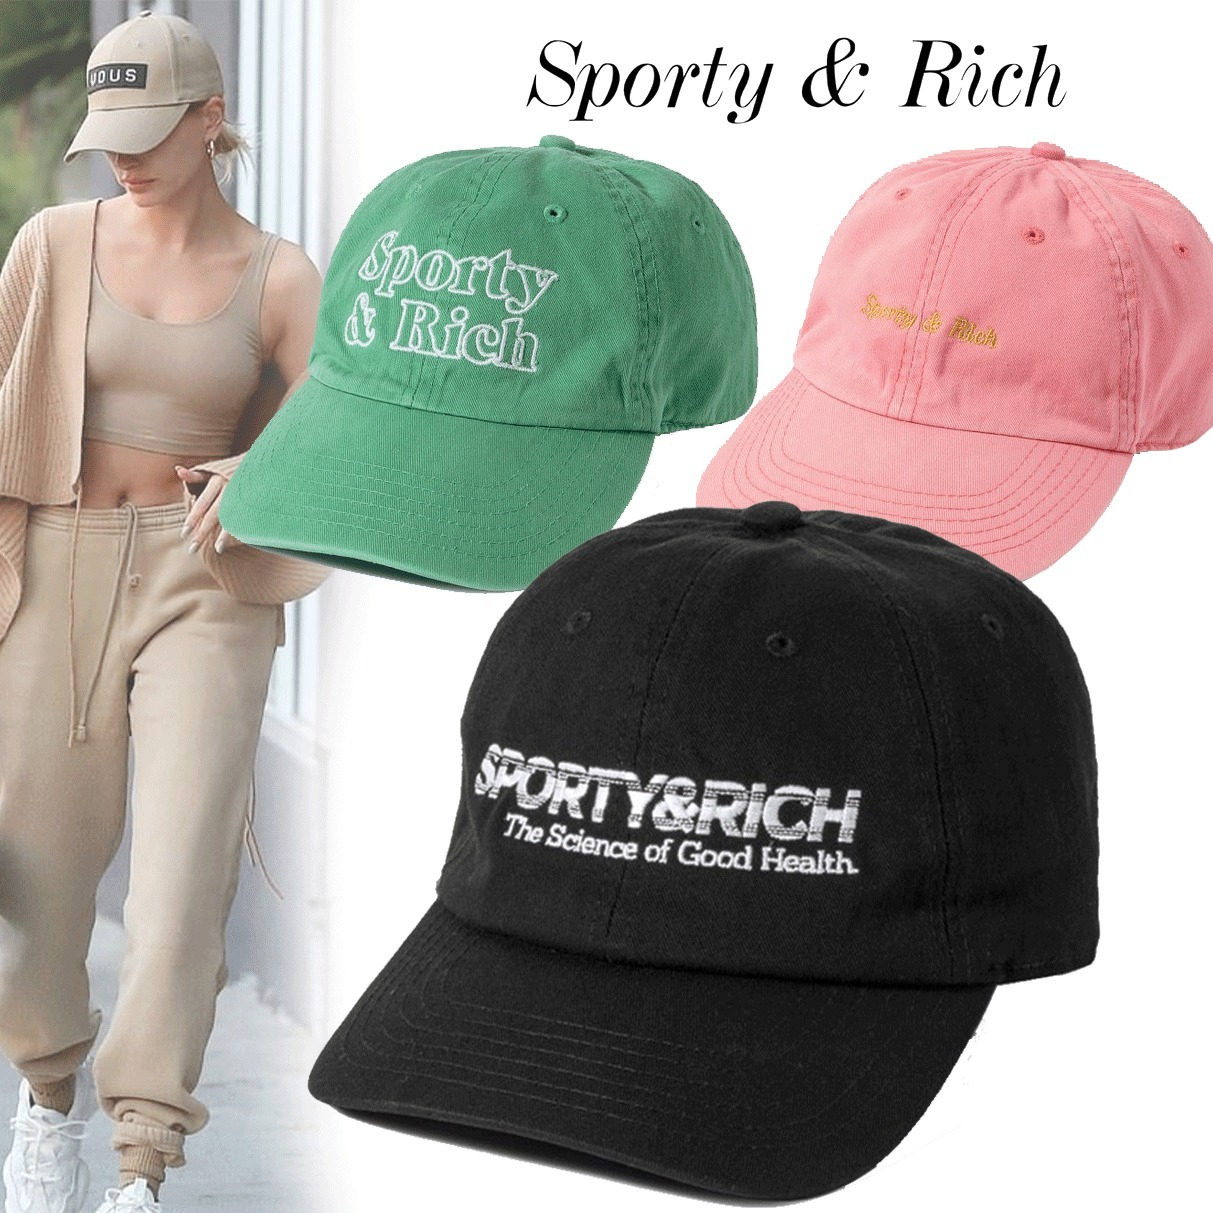 shop sporty & rich accessories